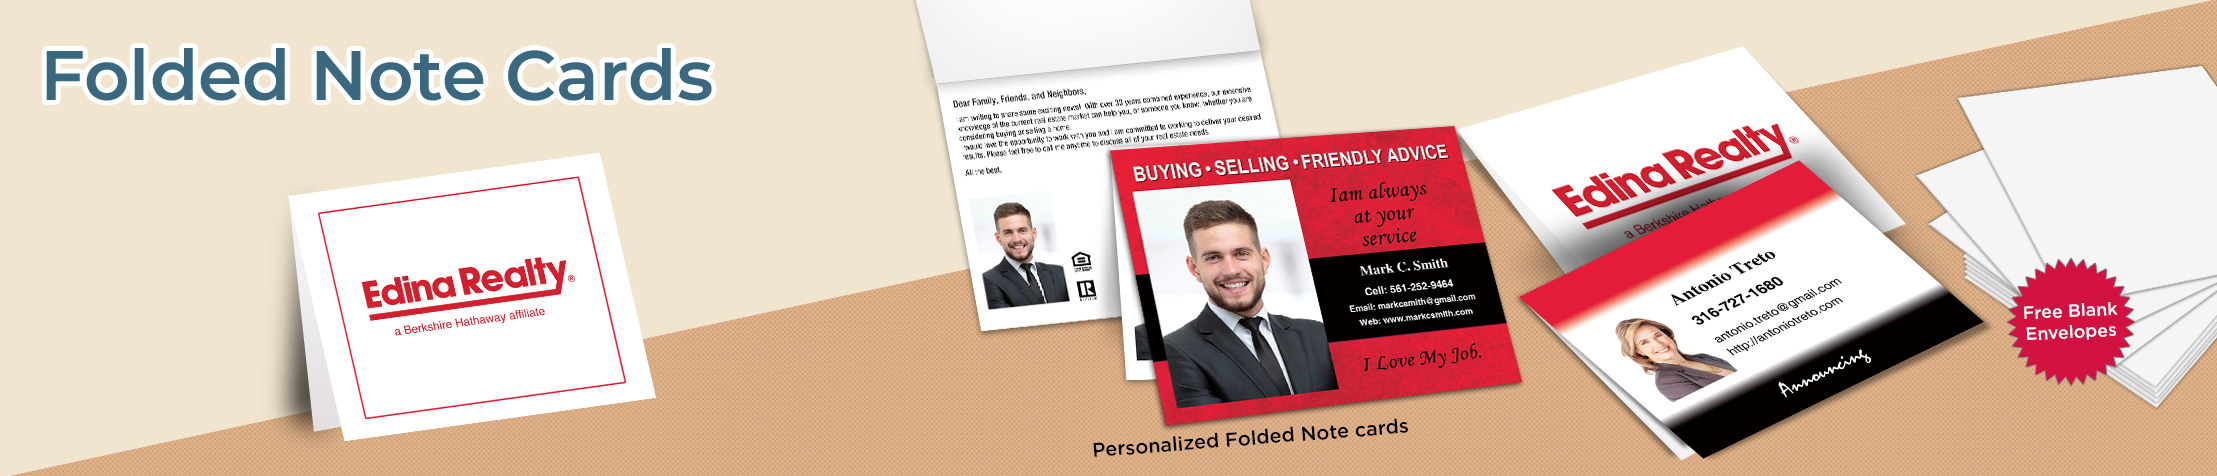 Edina Realty Folded Note Cards - Edina Realty stationery | BestPrintBuy.com